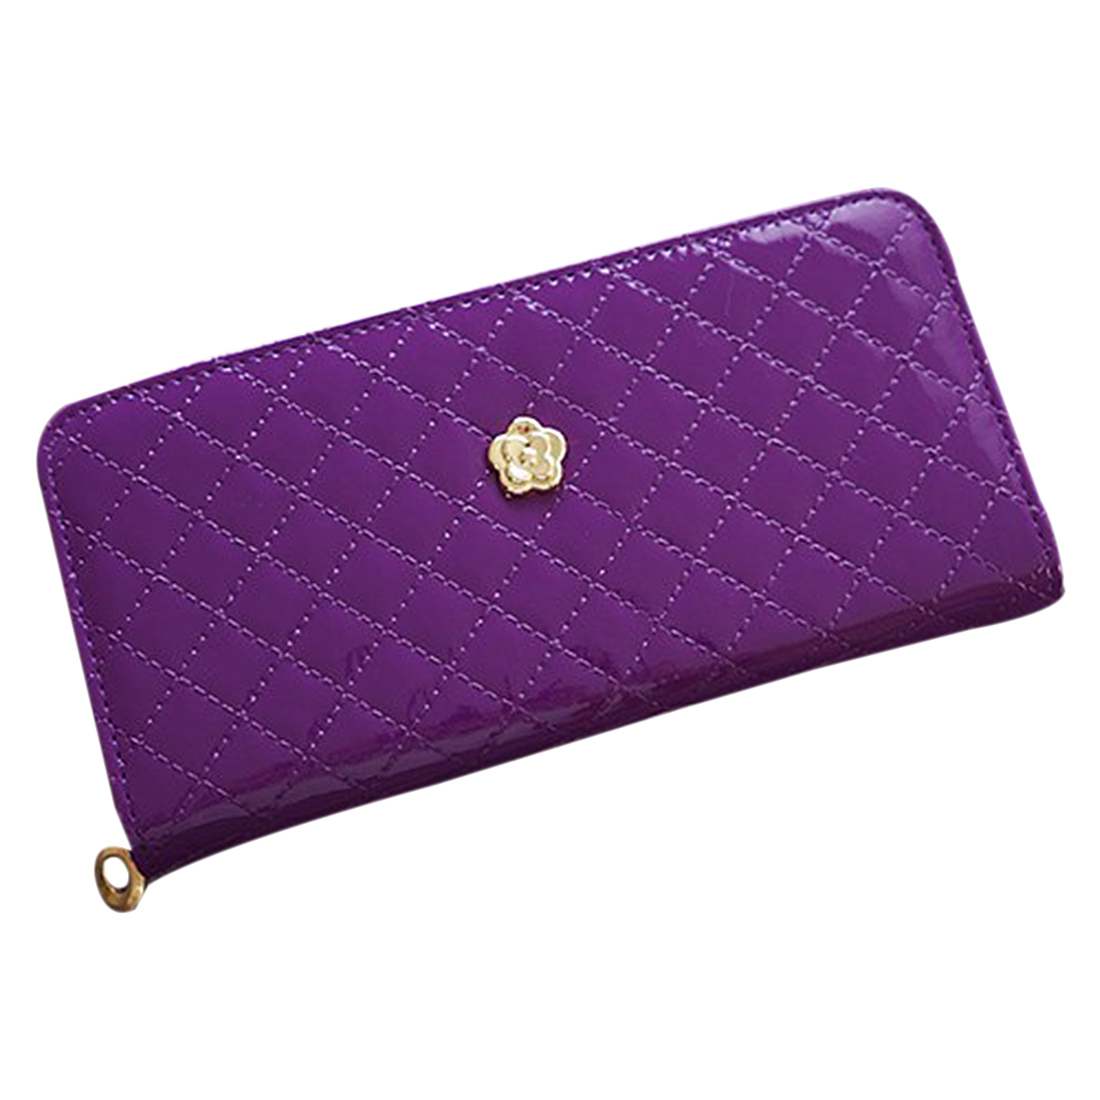 febdf056c36e women quilted long wallet purse women Wallets With Coin Bag Plum flower clutch  bag